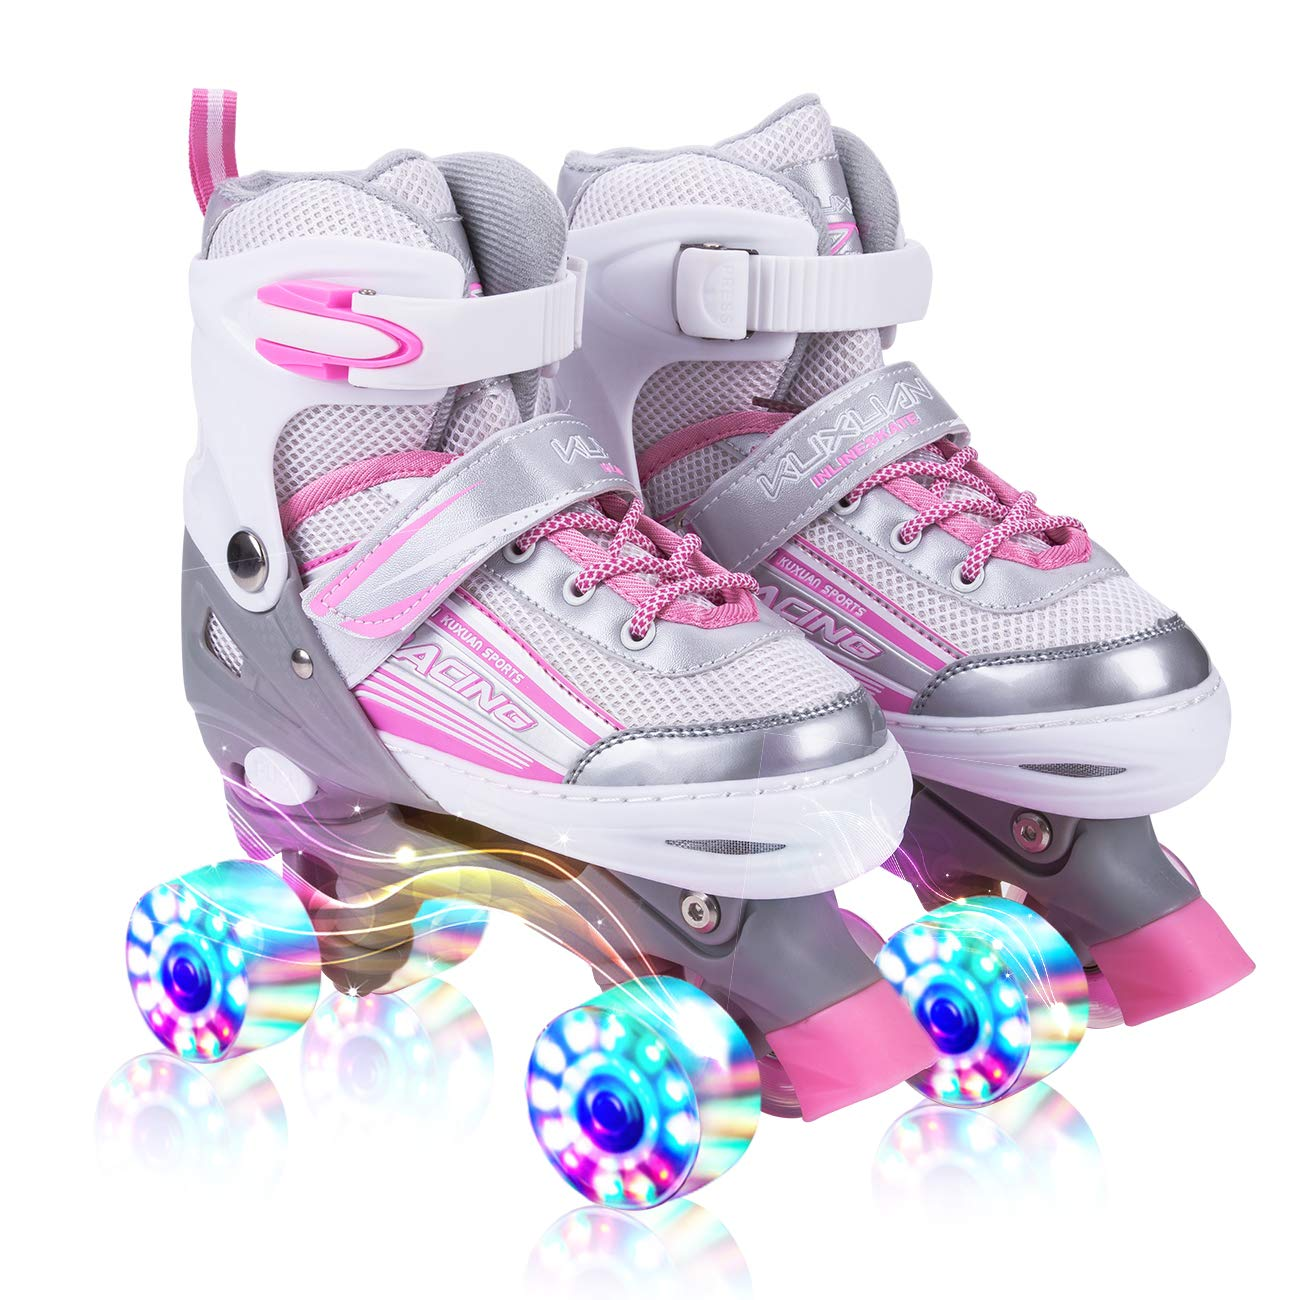 Kuxuan Saya Roller Skates Adjustable for Kids,with All Wheels Light up,Fun Illuminating for Girls and Ladies - Pink S